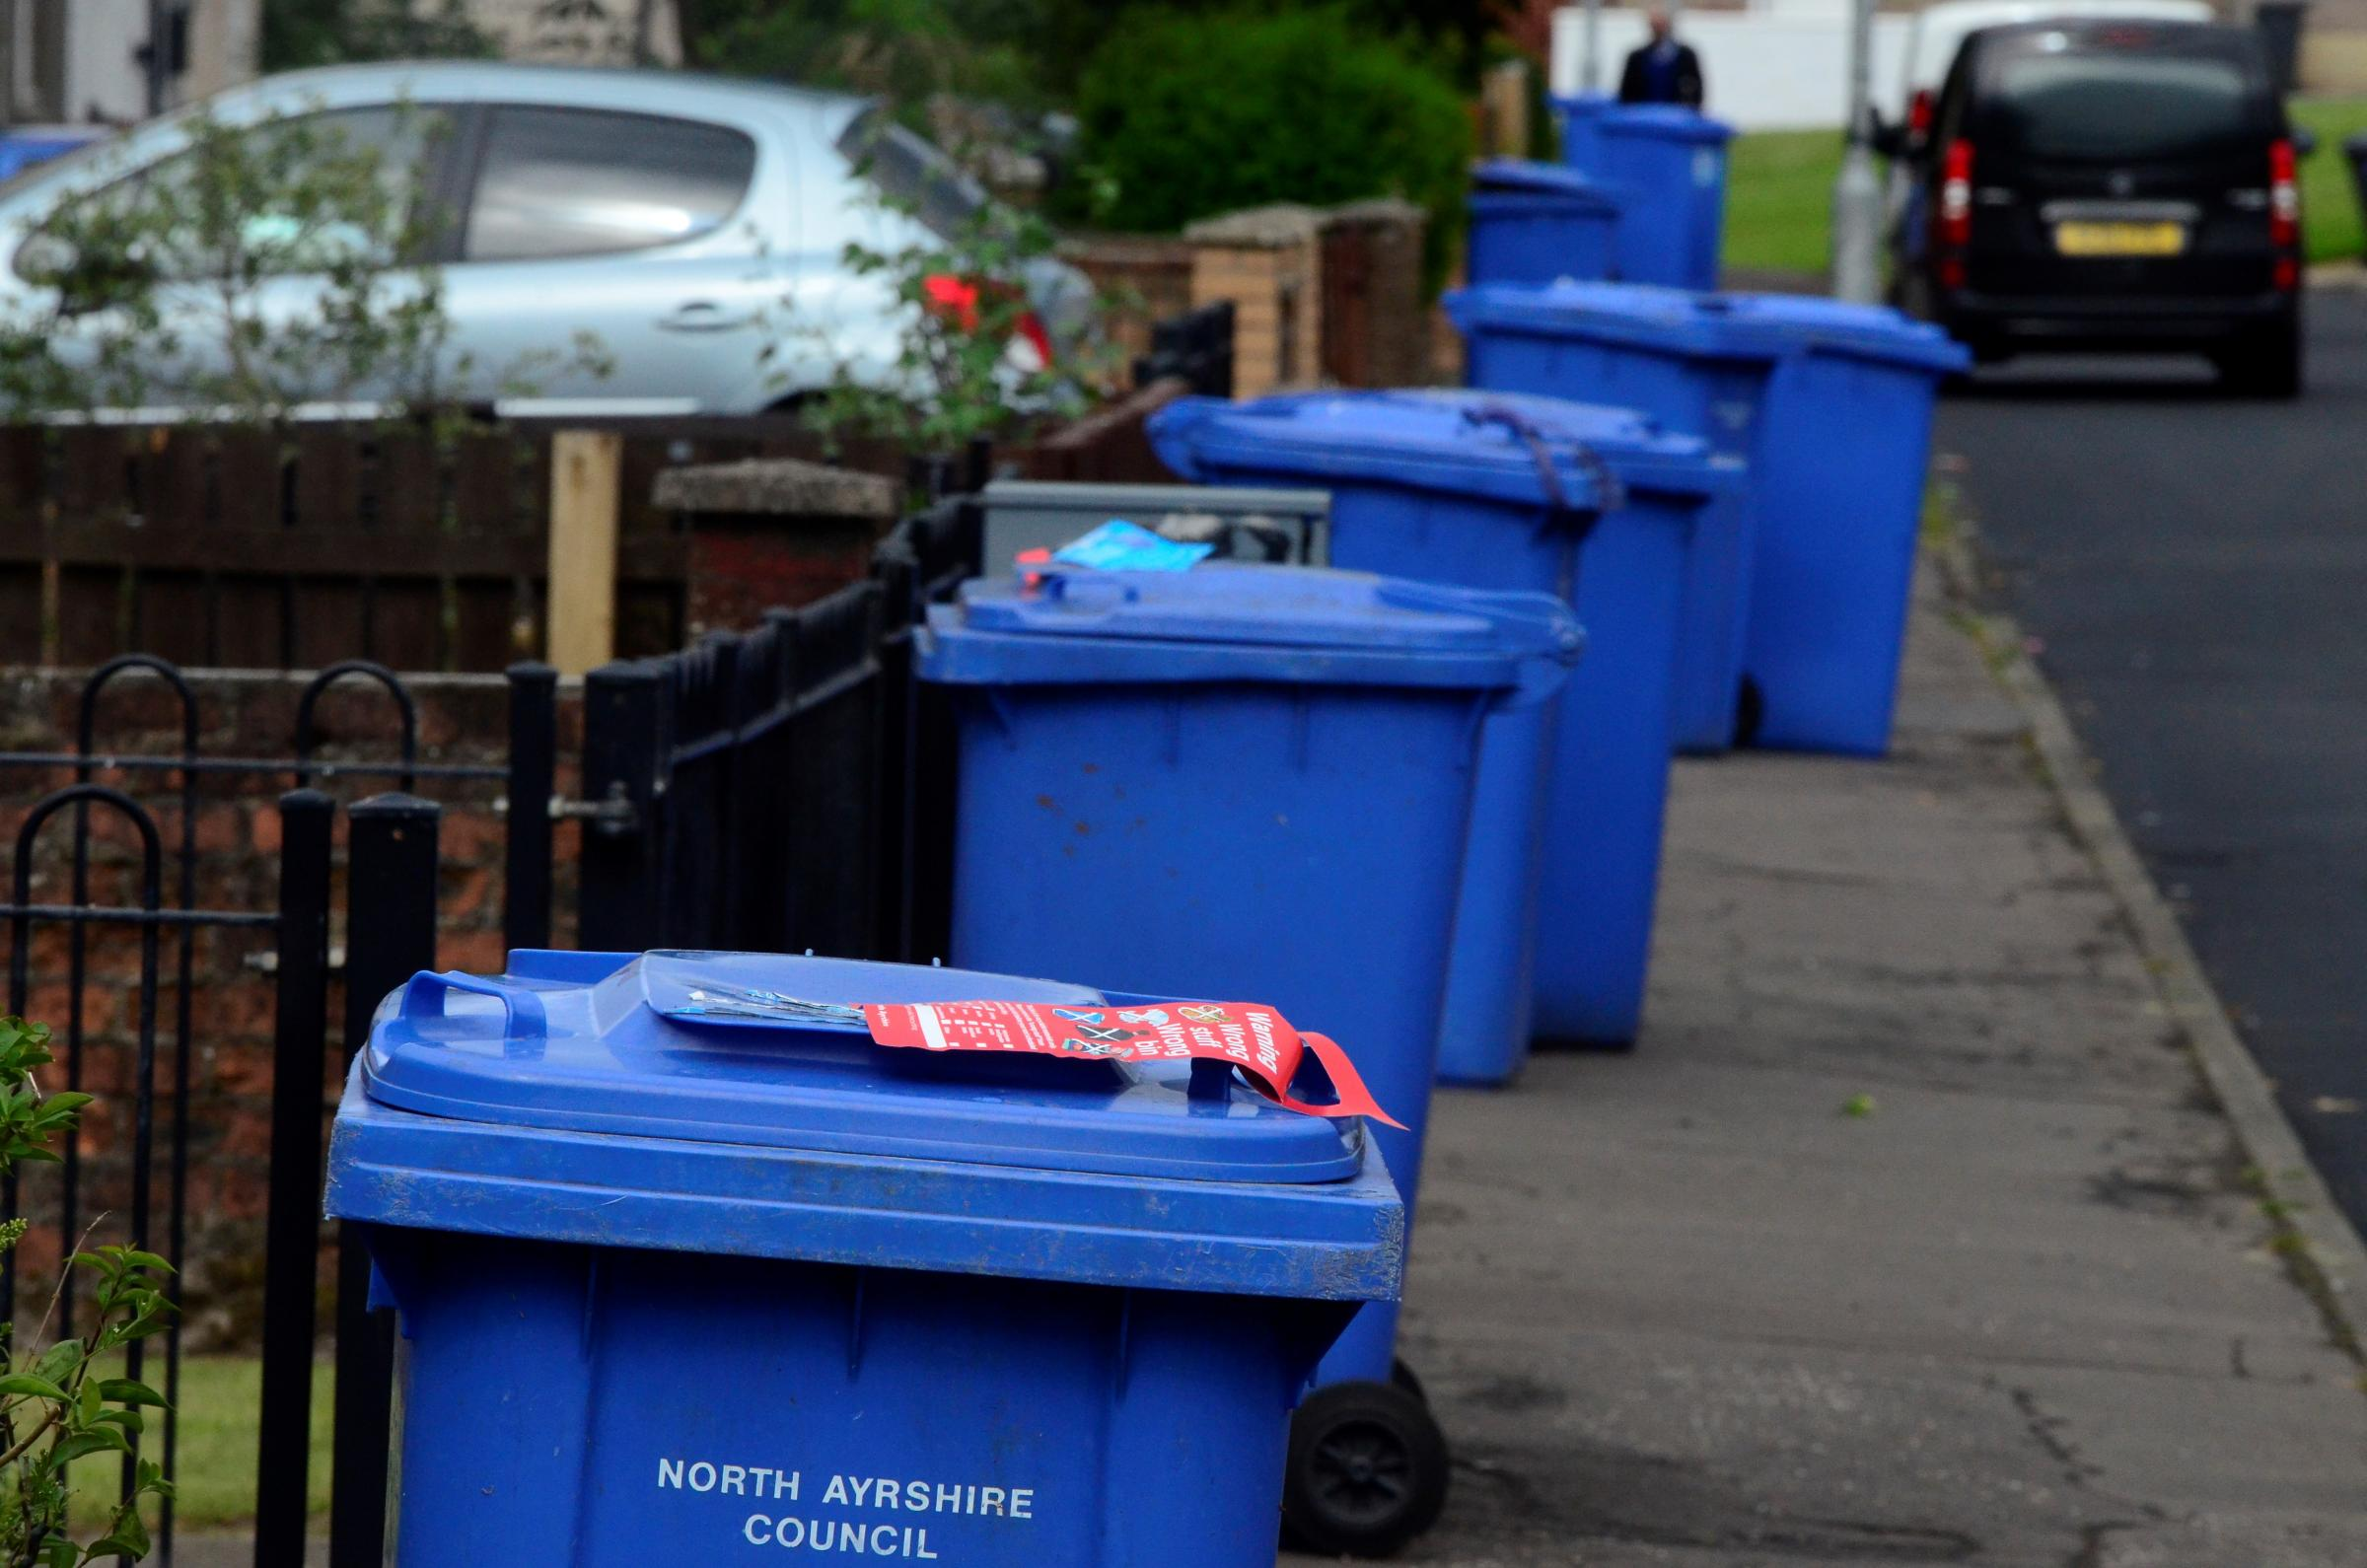 Bins in North Ayrshire to be collected every three weeks